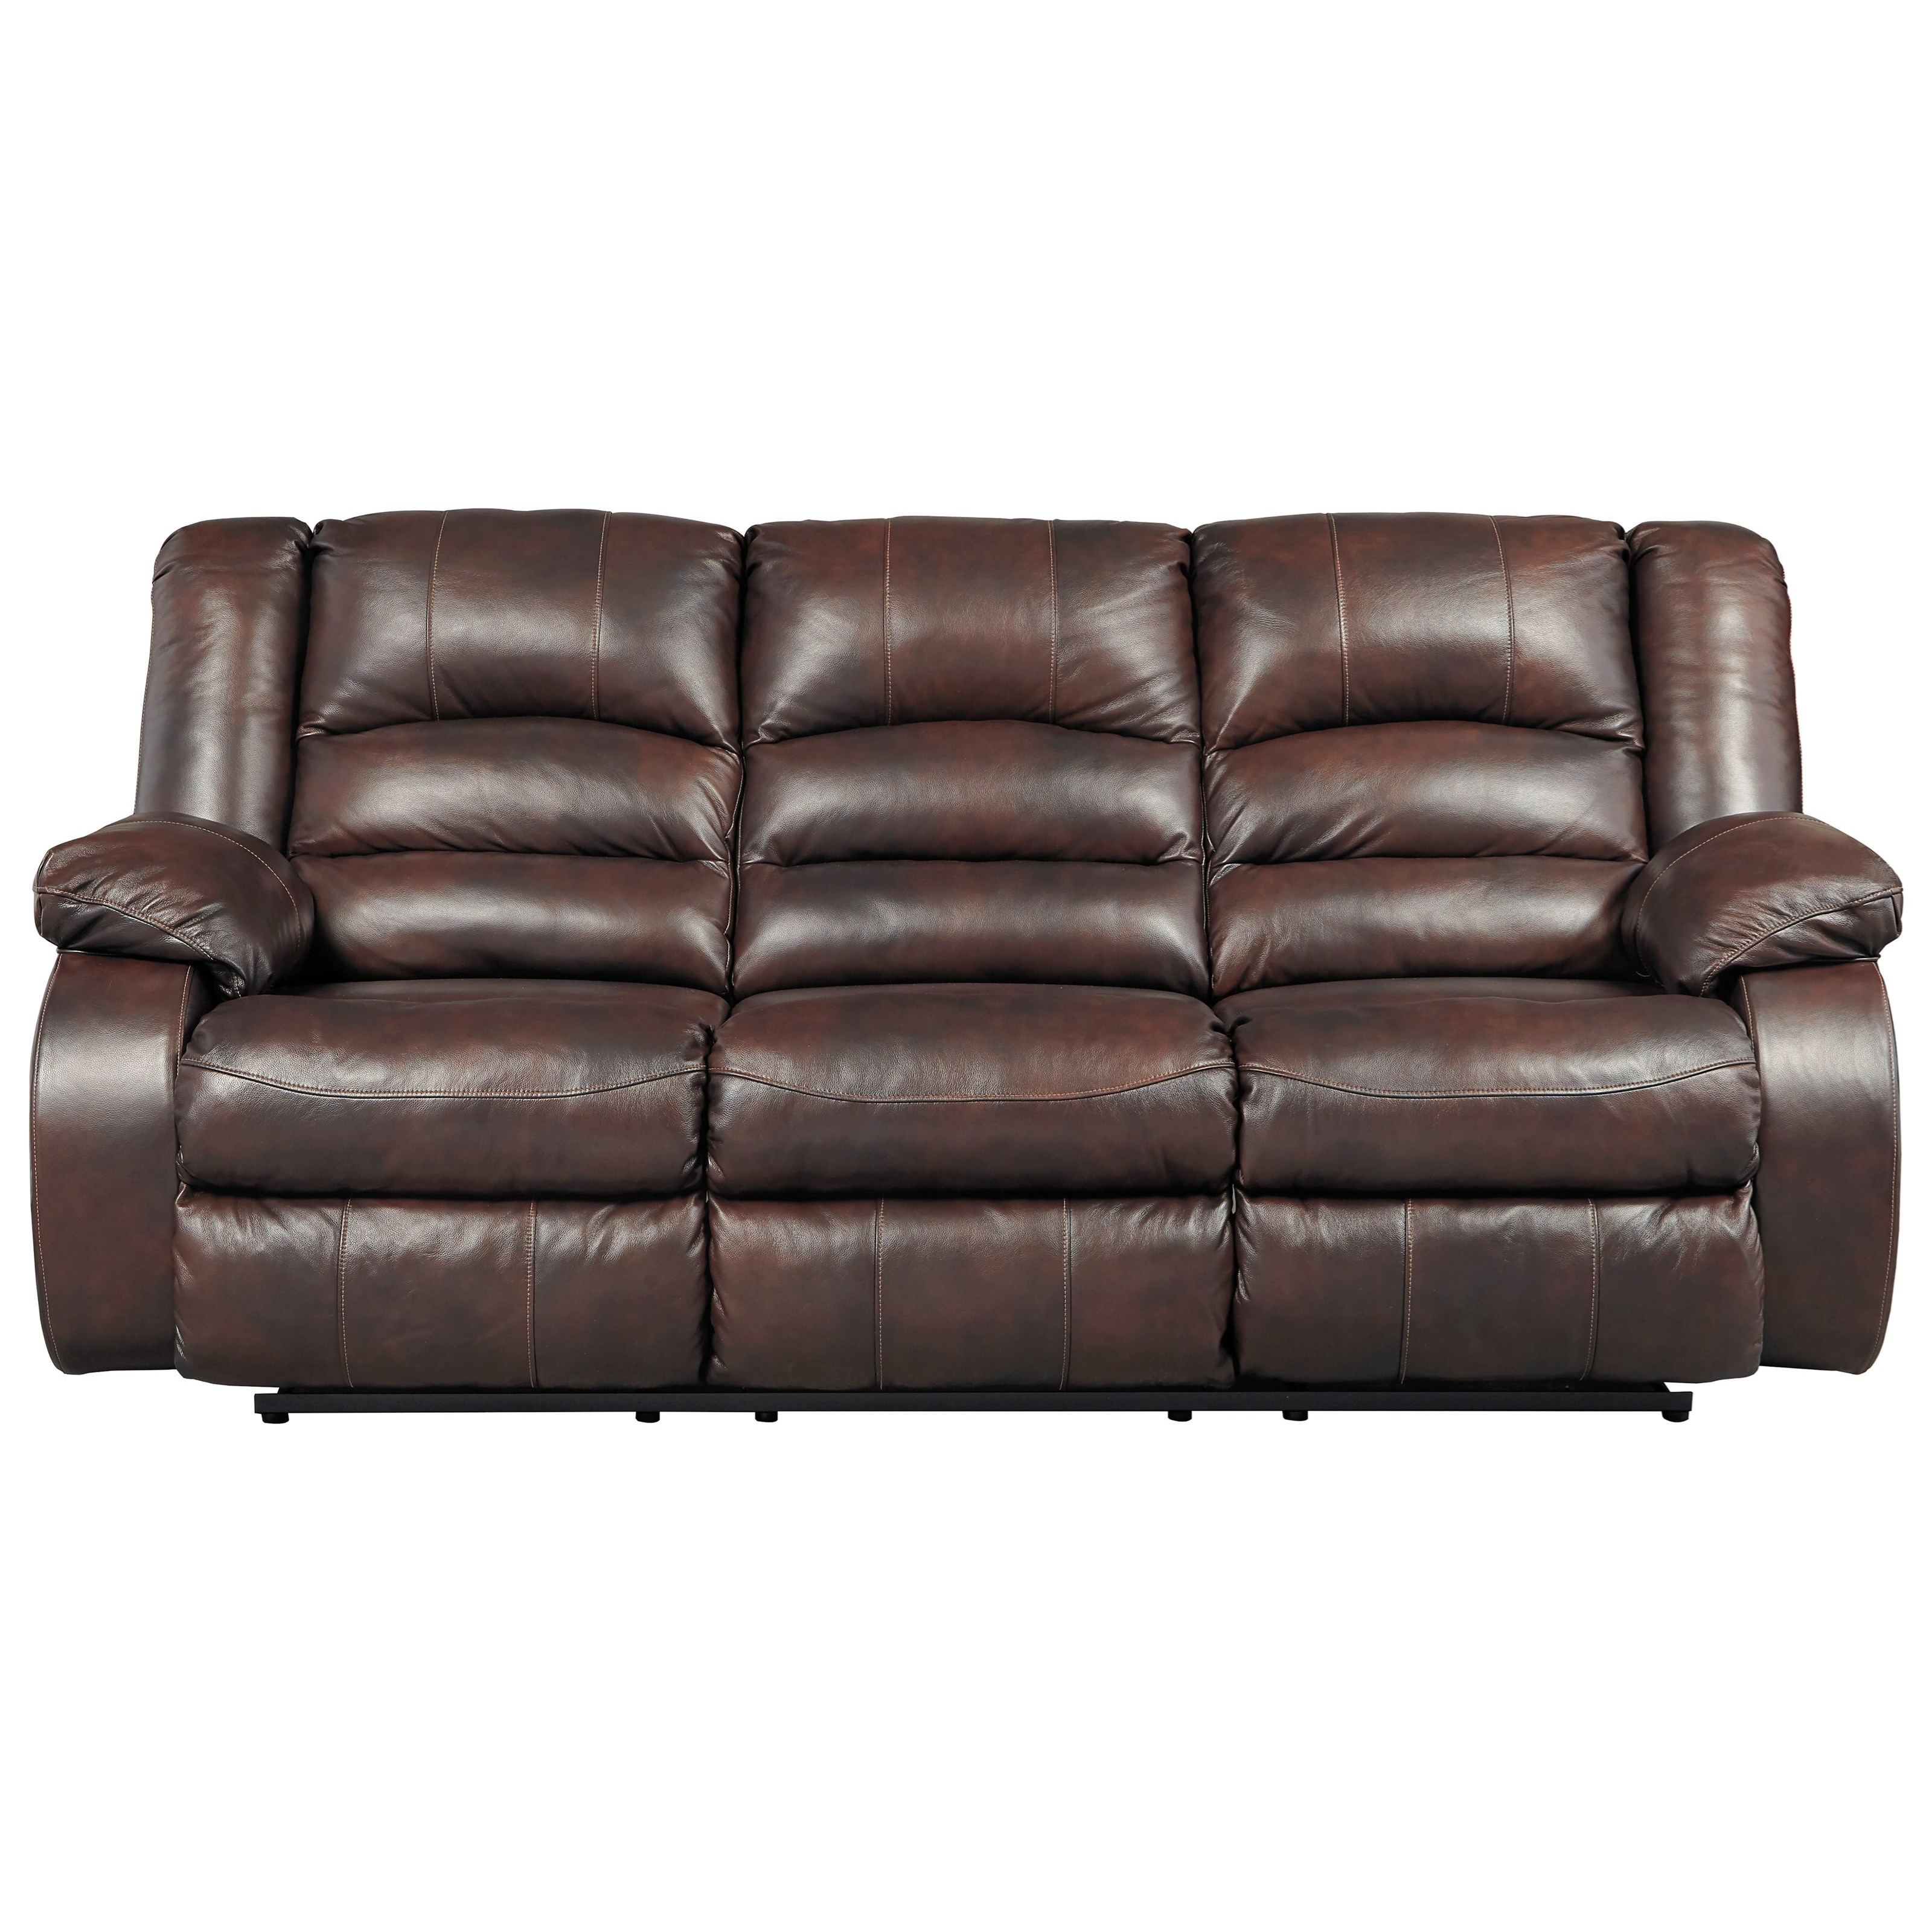 Groovy Levelland Leather Match Reclining Sofa By Signature Design By Ashley At Reids Furniture Home Interior And Landscaping Elinuenasavecom